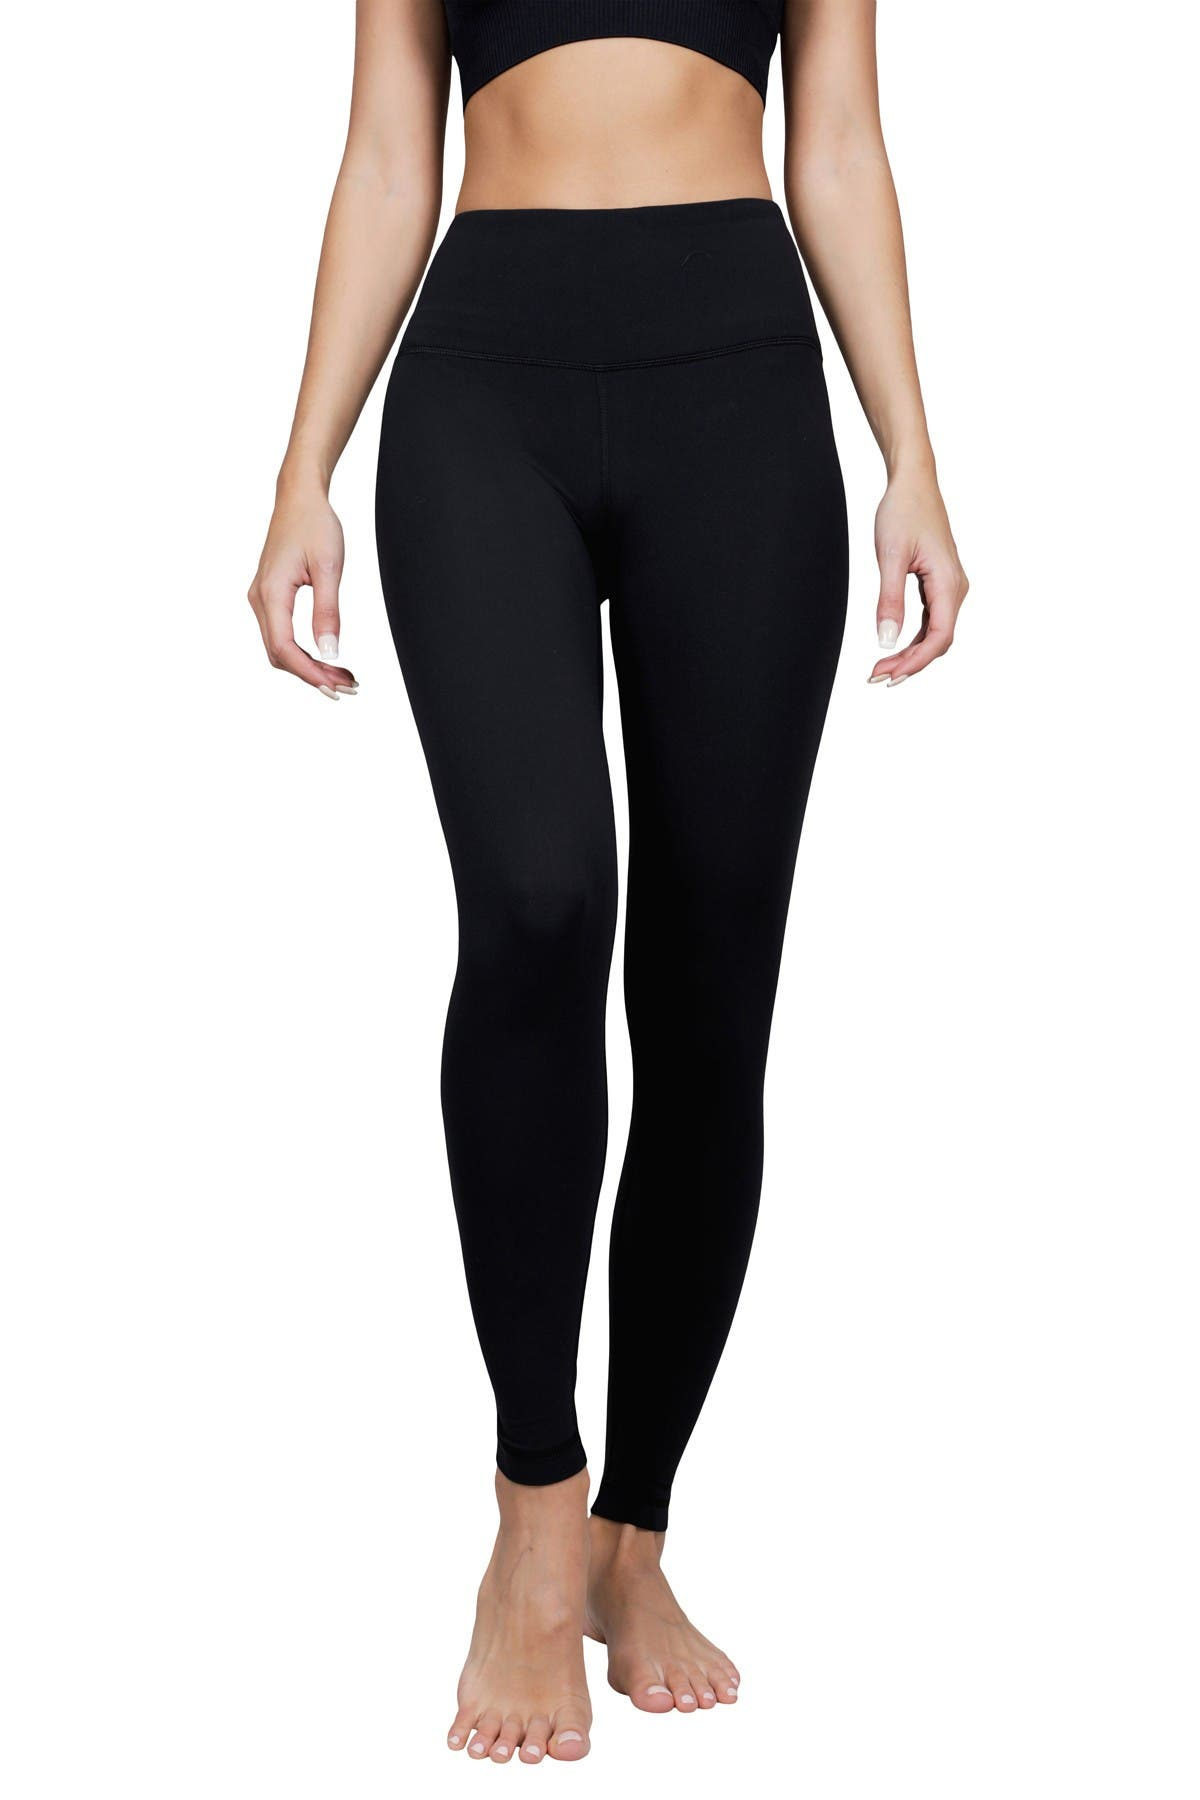 Image of 90 Degree By Reflex Nude Tech High Rise Ankle Leggings